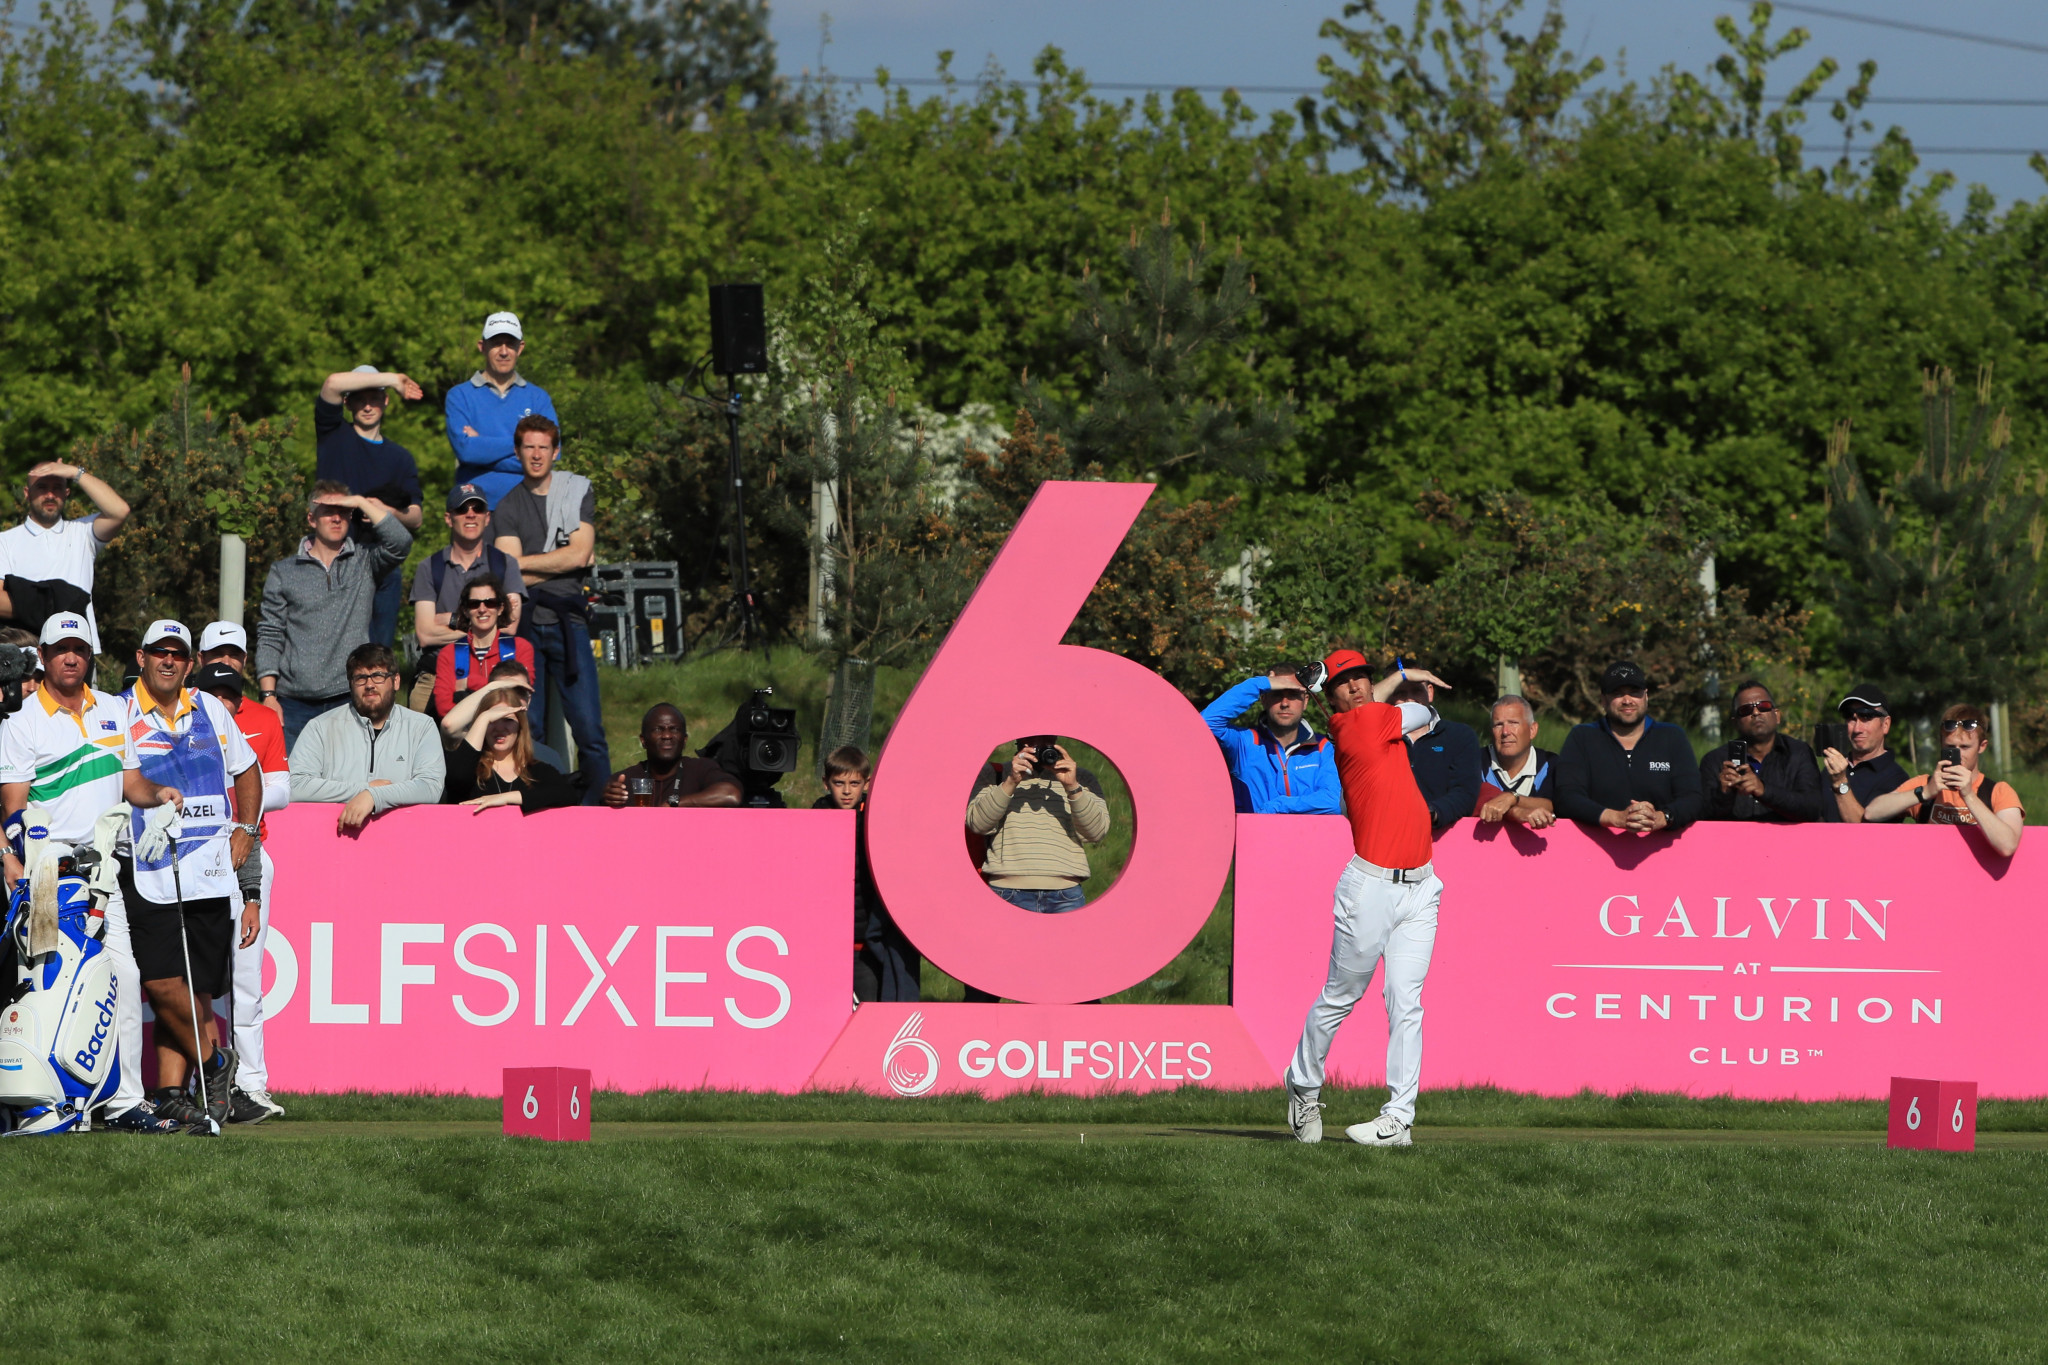 European Tour confirm GolfSixes to return to St Albans this year following success of inaugural edition